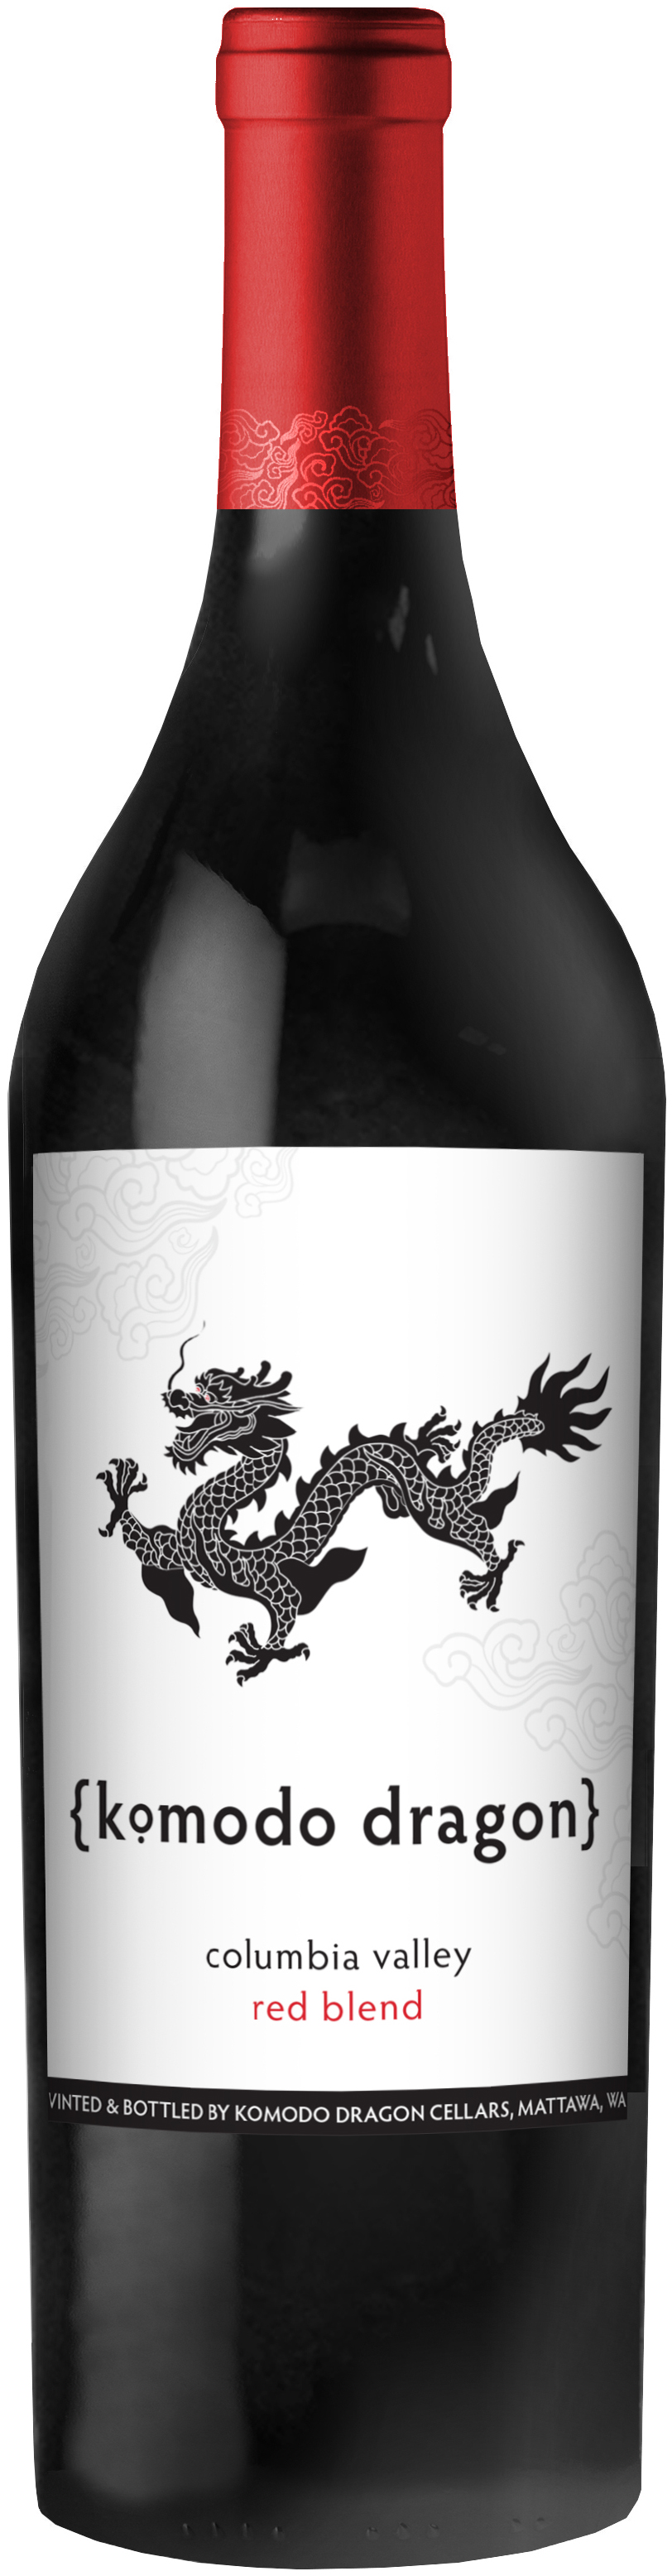 Komodo Dragon Releases 2014 Red Blend